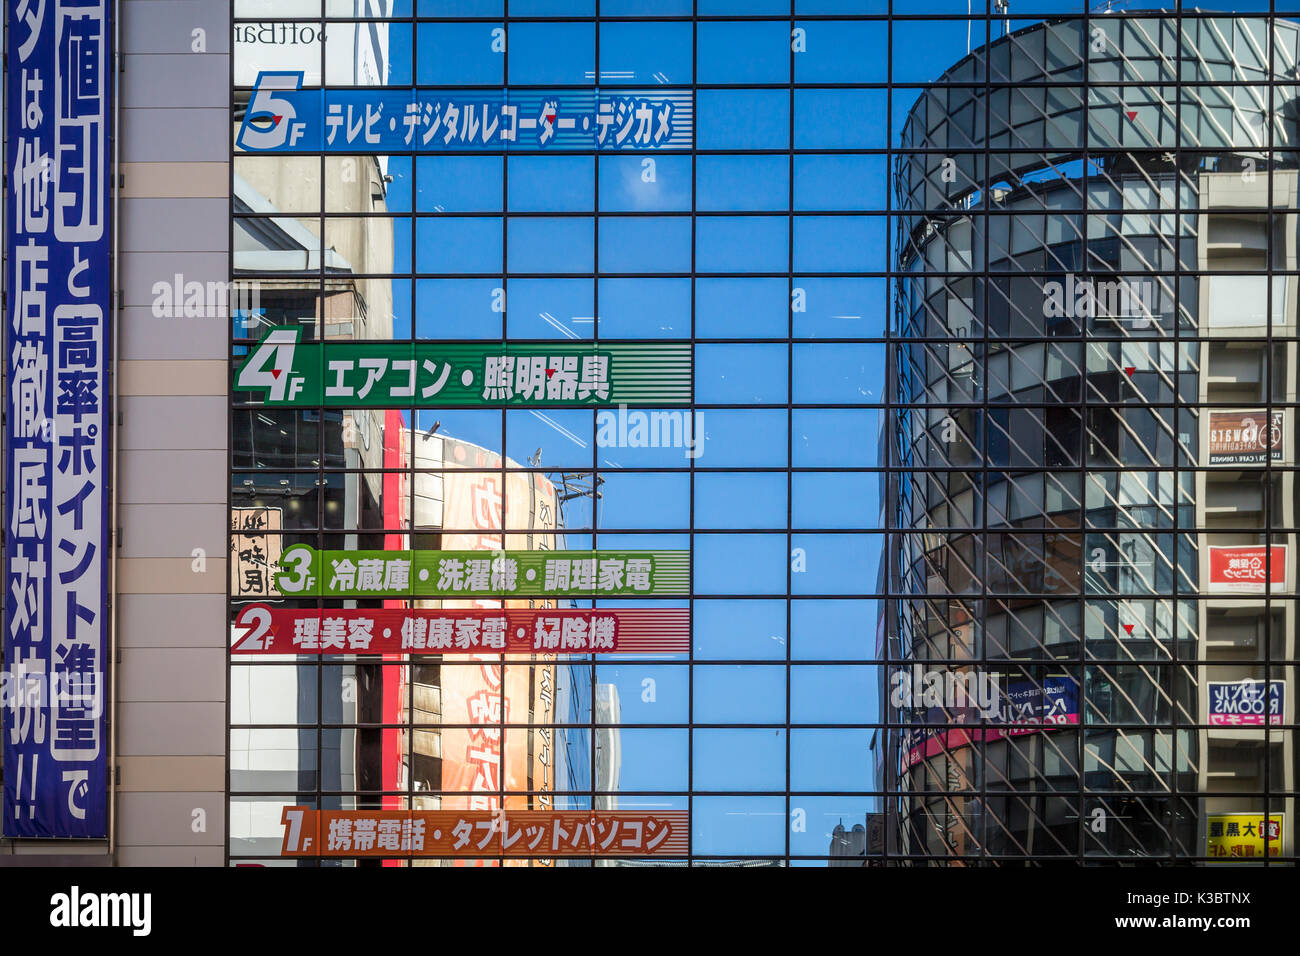 Reflections in the glass buildings in the Shibuya district of Tokyo, Japan, Asia. - Stock Image